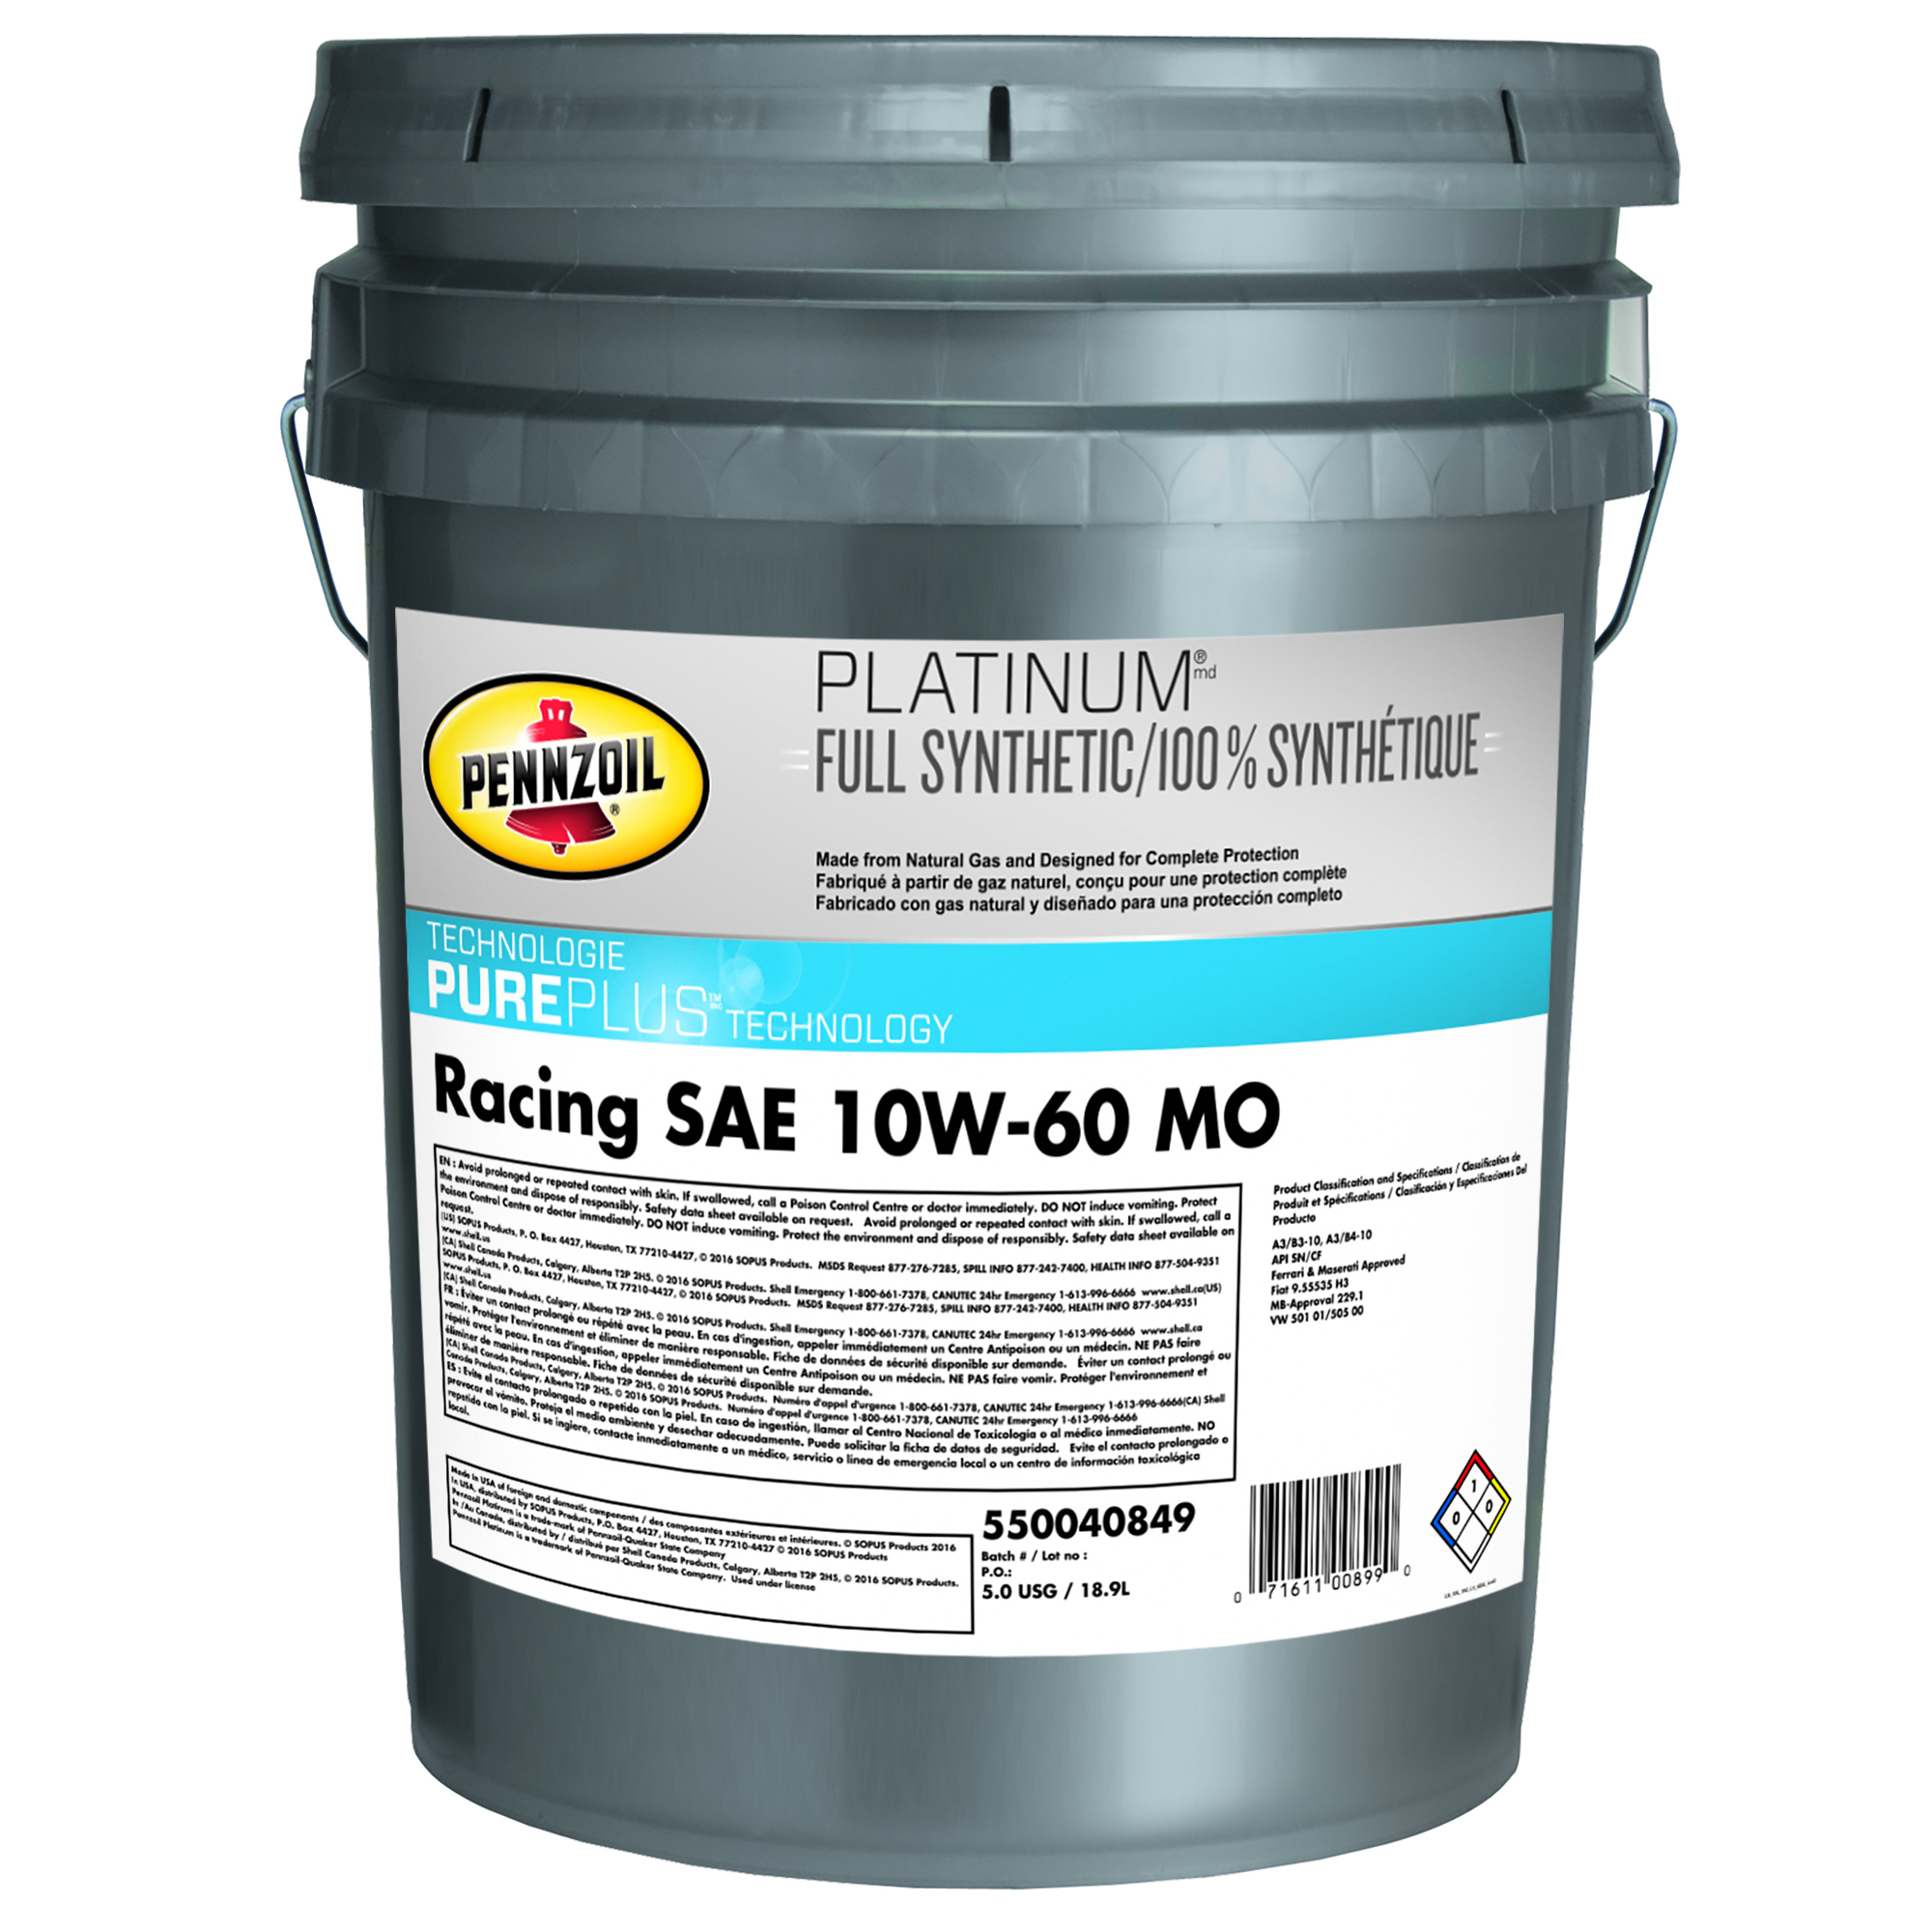 Pennzoil Platinum Racing Oil 10W-60 SN , 5 Gallon